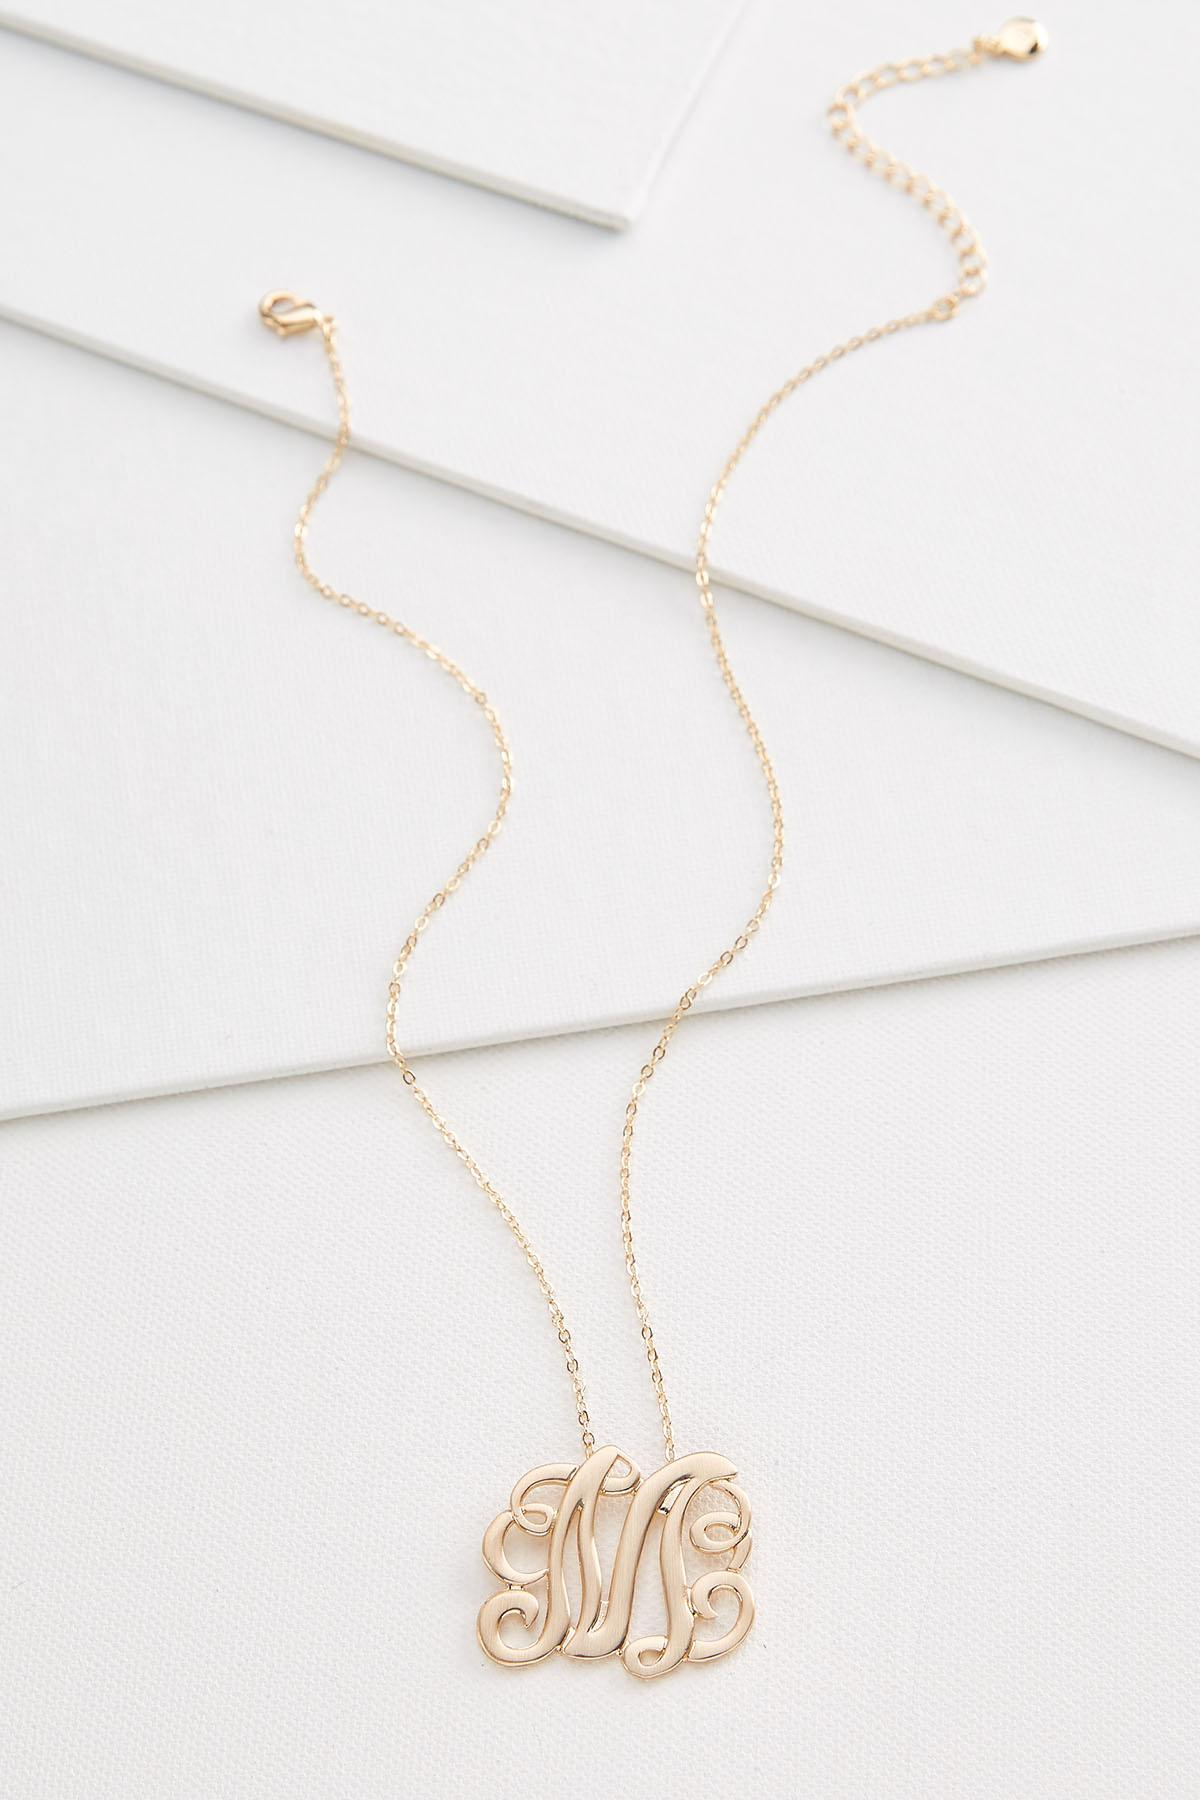 M Scroll Gold Necklace